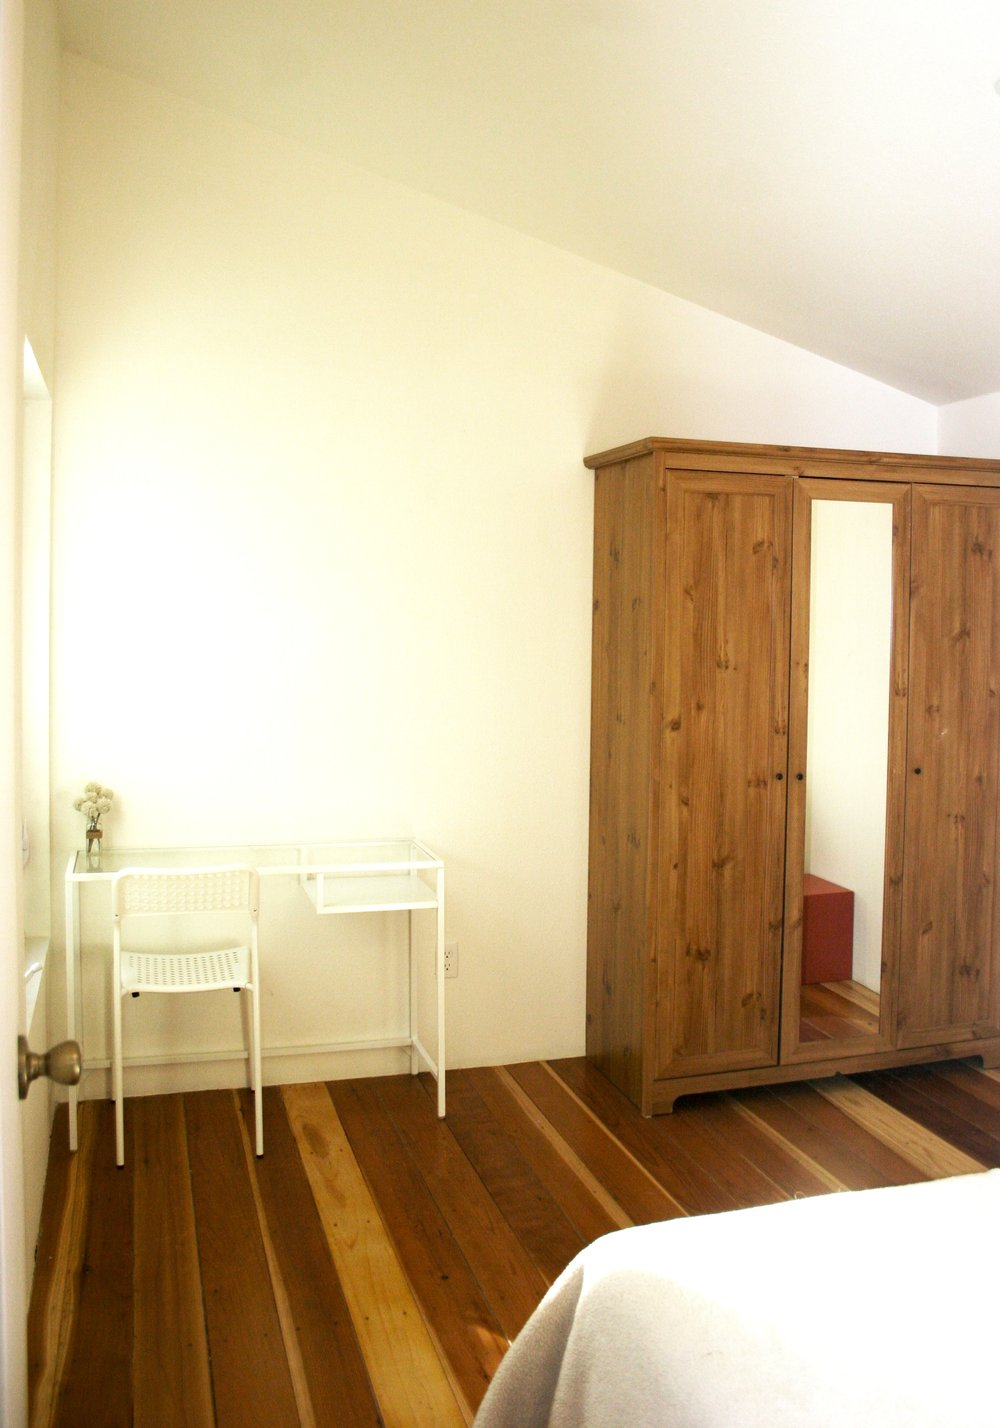 Visiting artist loft - private bedroom and open loft space for individuals and small groups